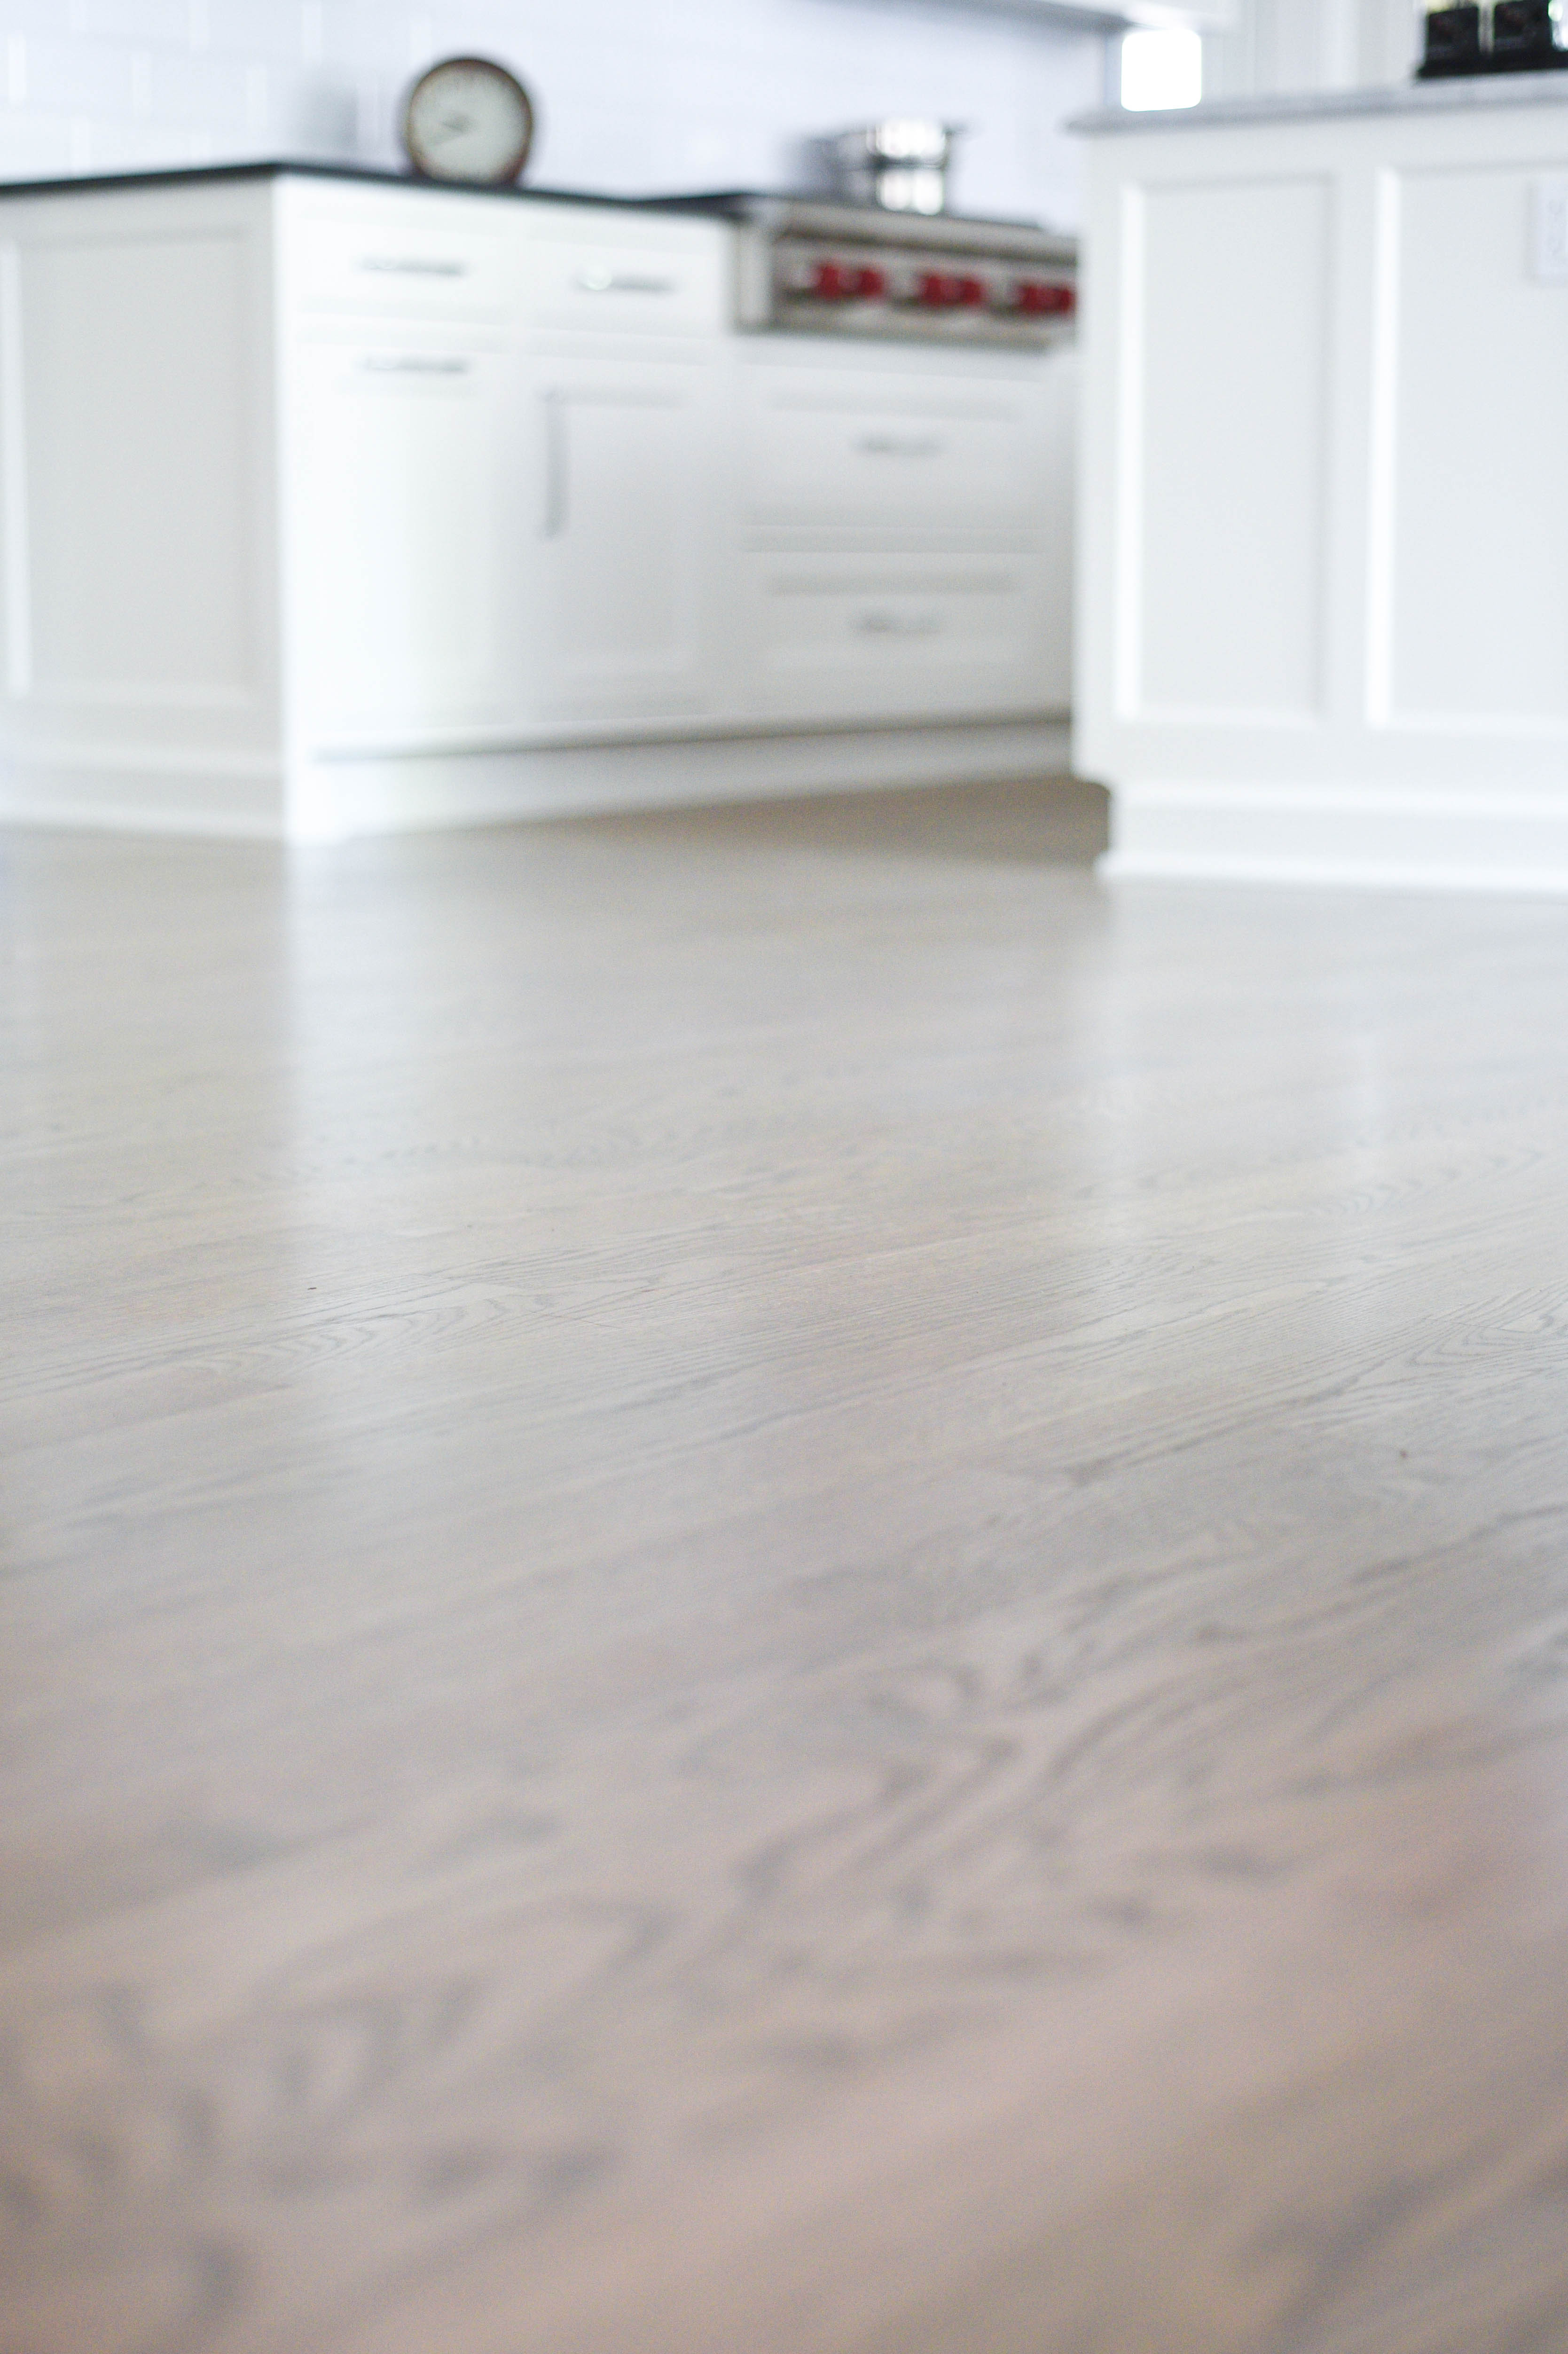 Staining Hardwood Floors Grey - Home with Keki on home film 2016, home design trends 2016, home interior design 2015, home furniture 2016, home decorating 2016,